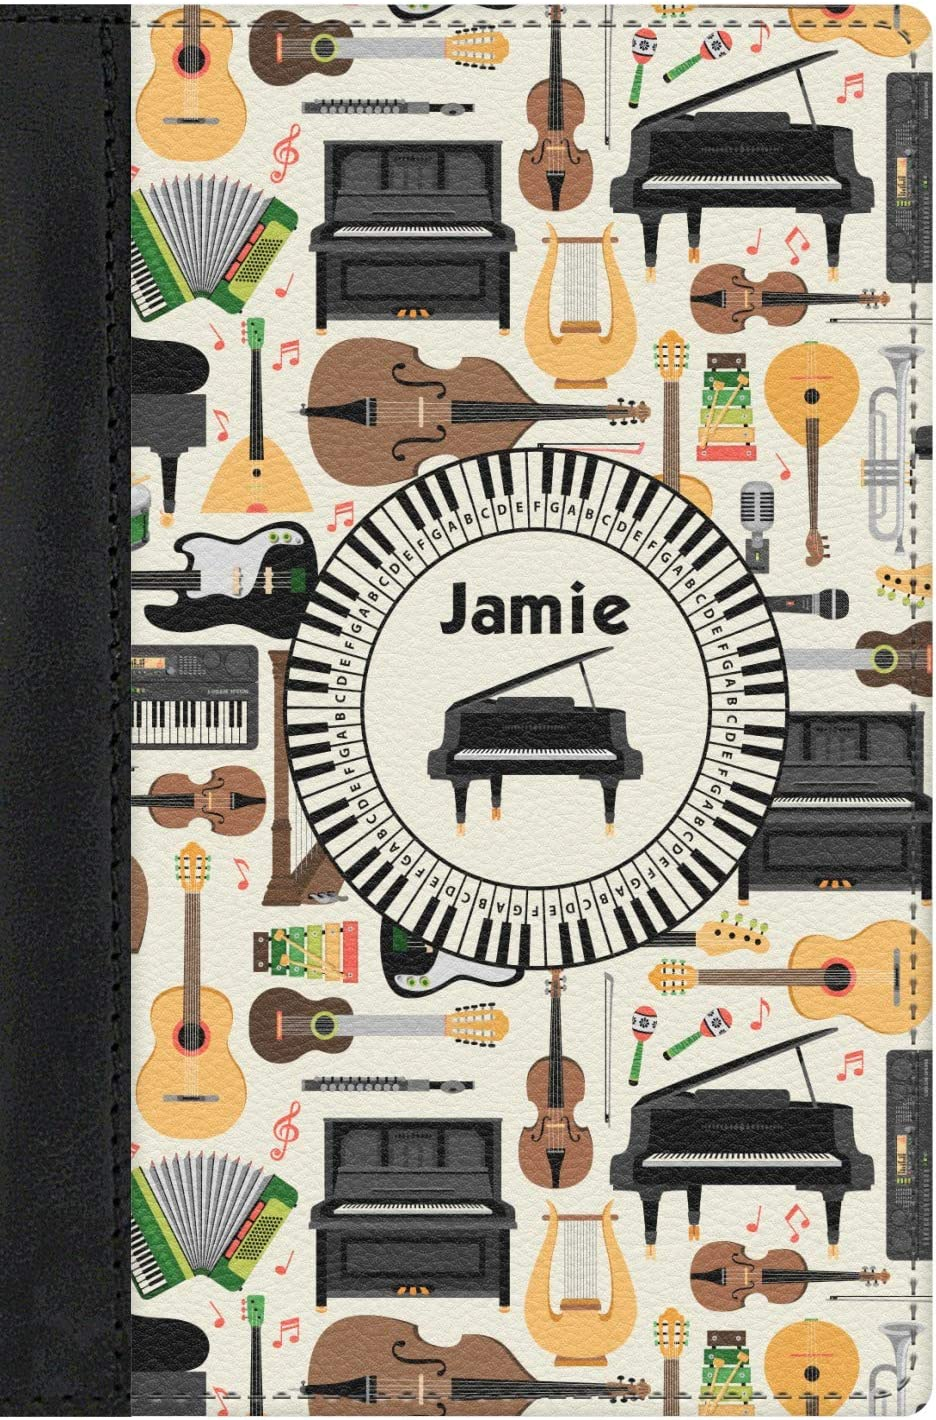 Musical Topics on TV Instruments Genuine Leather safety Personalized Cover Passport